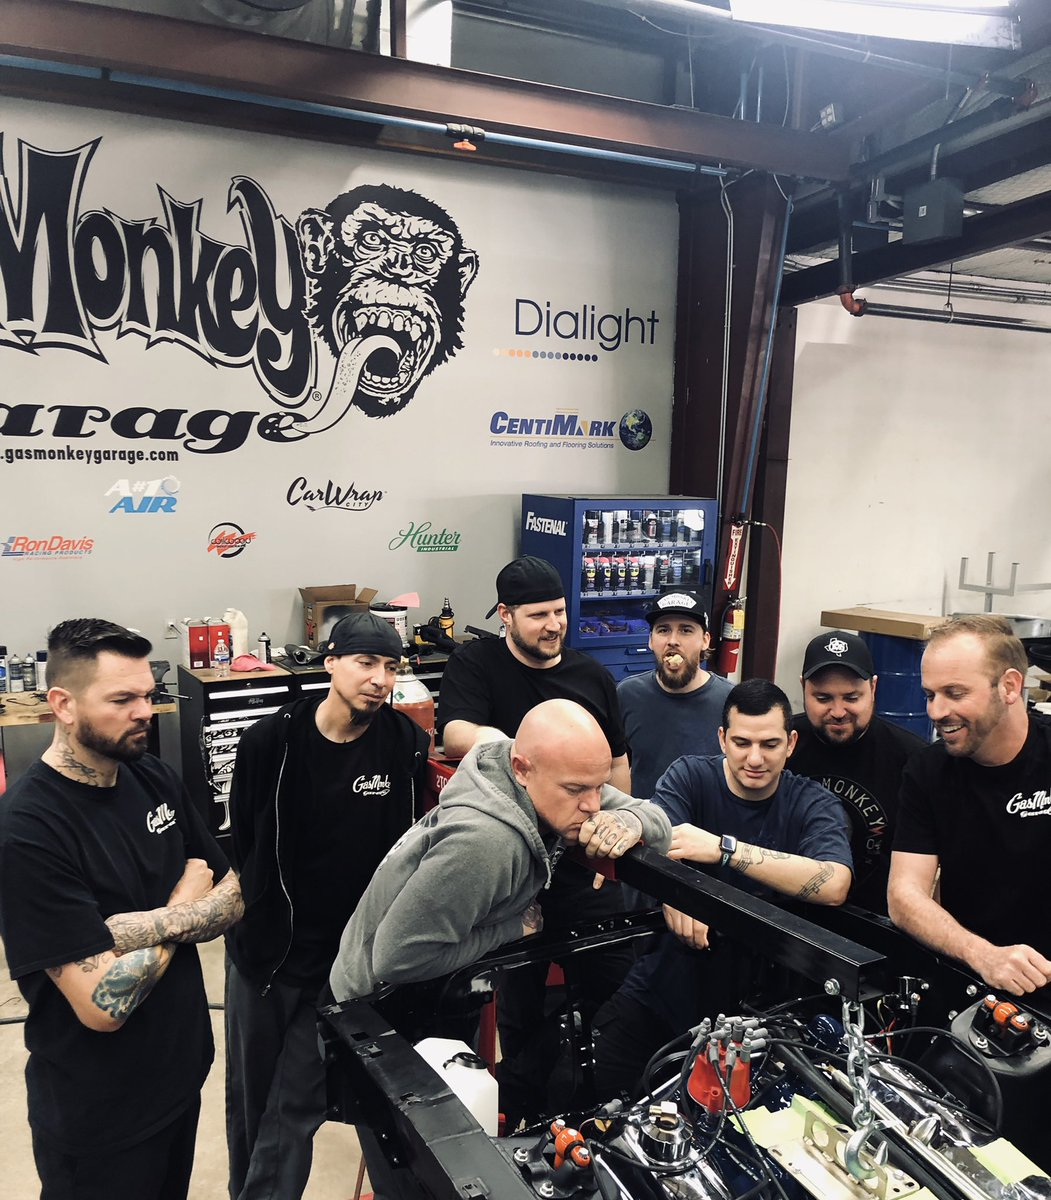 Gas Monkey Garage On Twitter Engine Is Officially In On Our Build